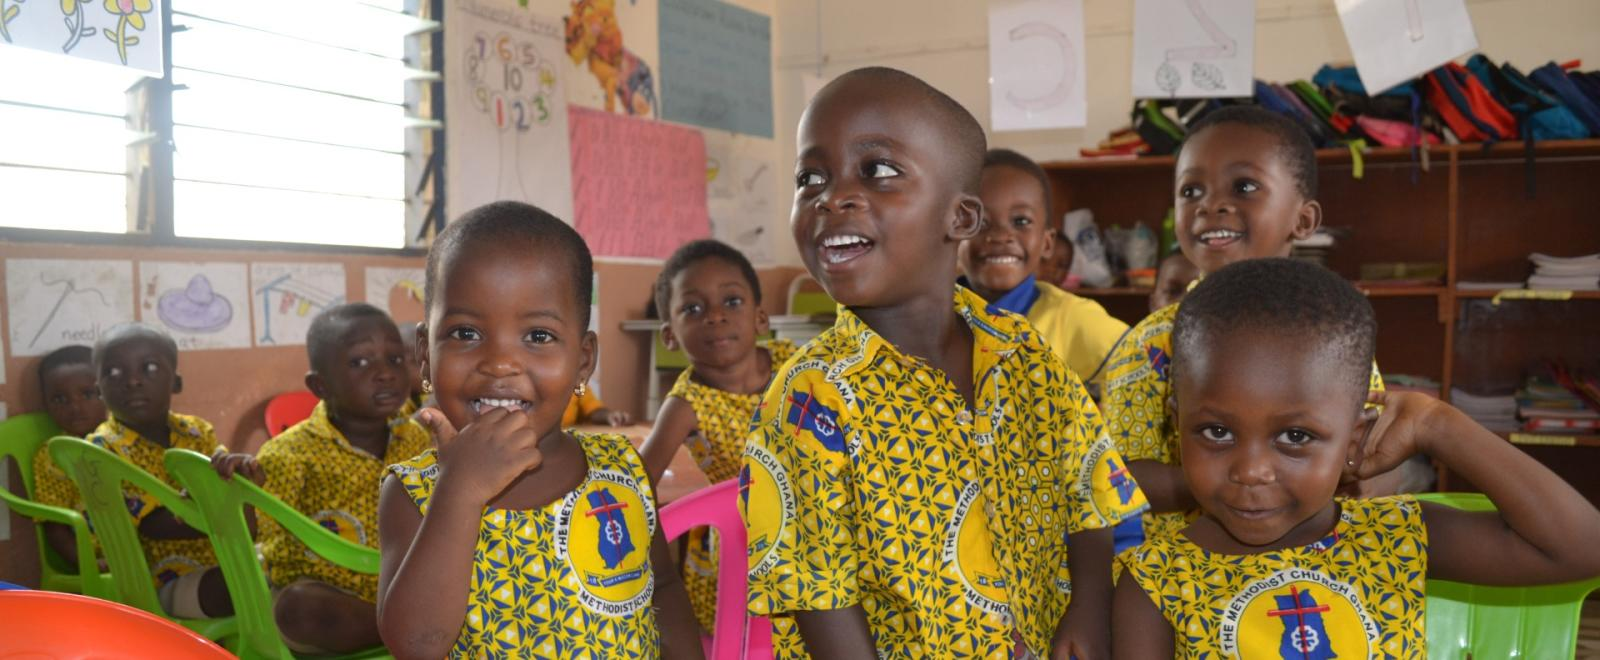 Children in a school in Ghana